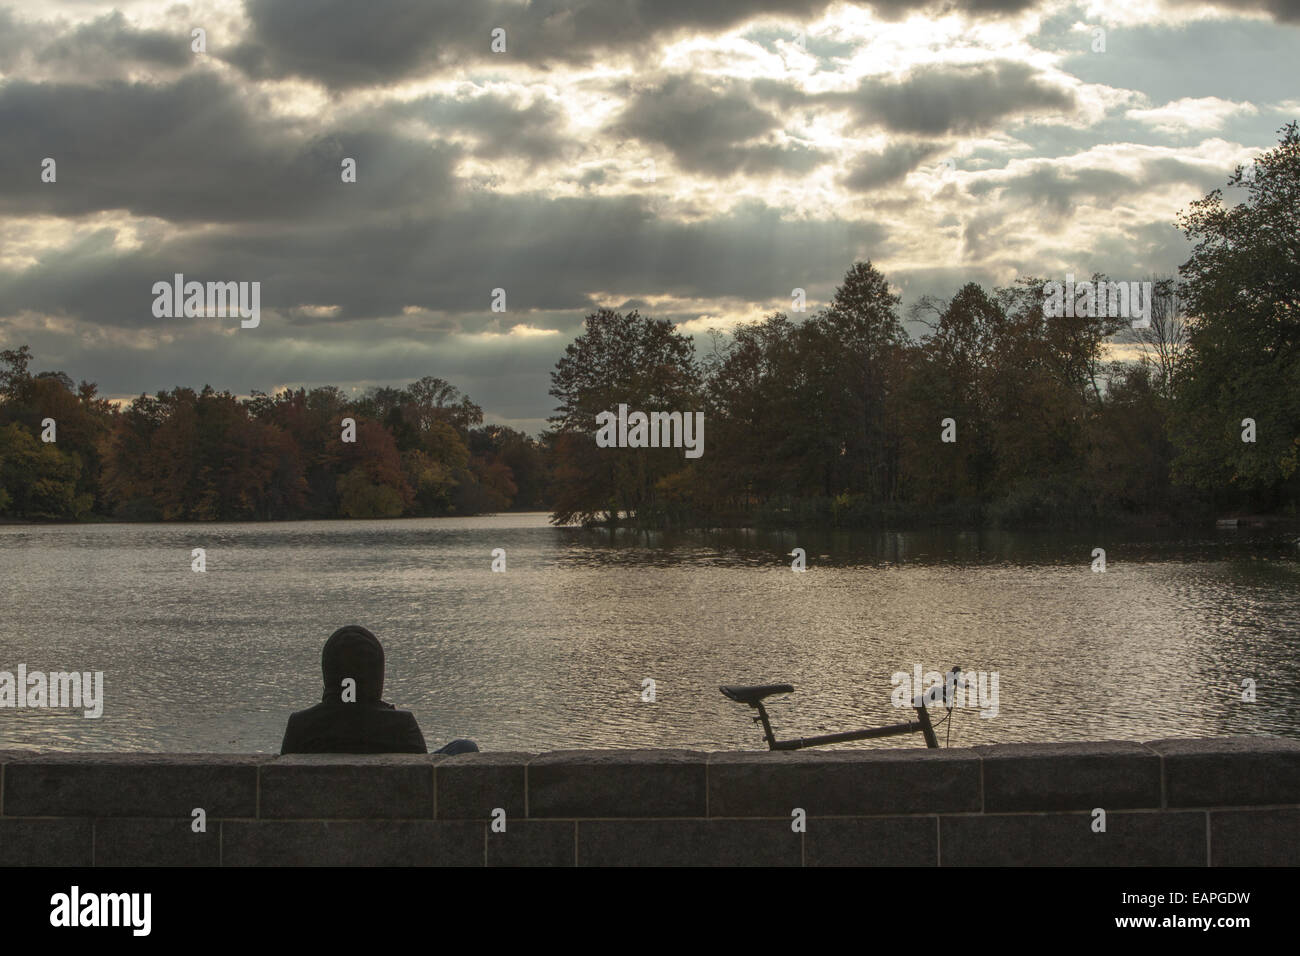 Herbsttag entlang des Sees im Prospect Park in Brooklyn, New York Stockfoto